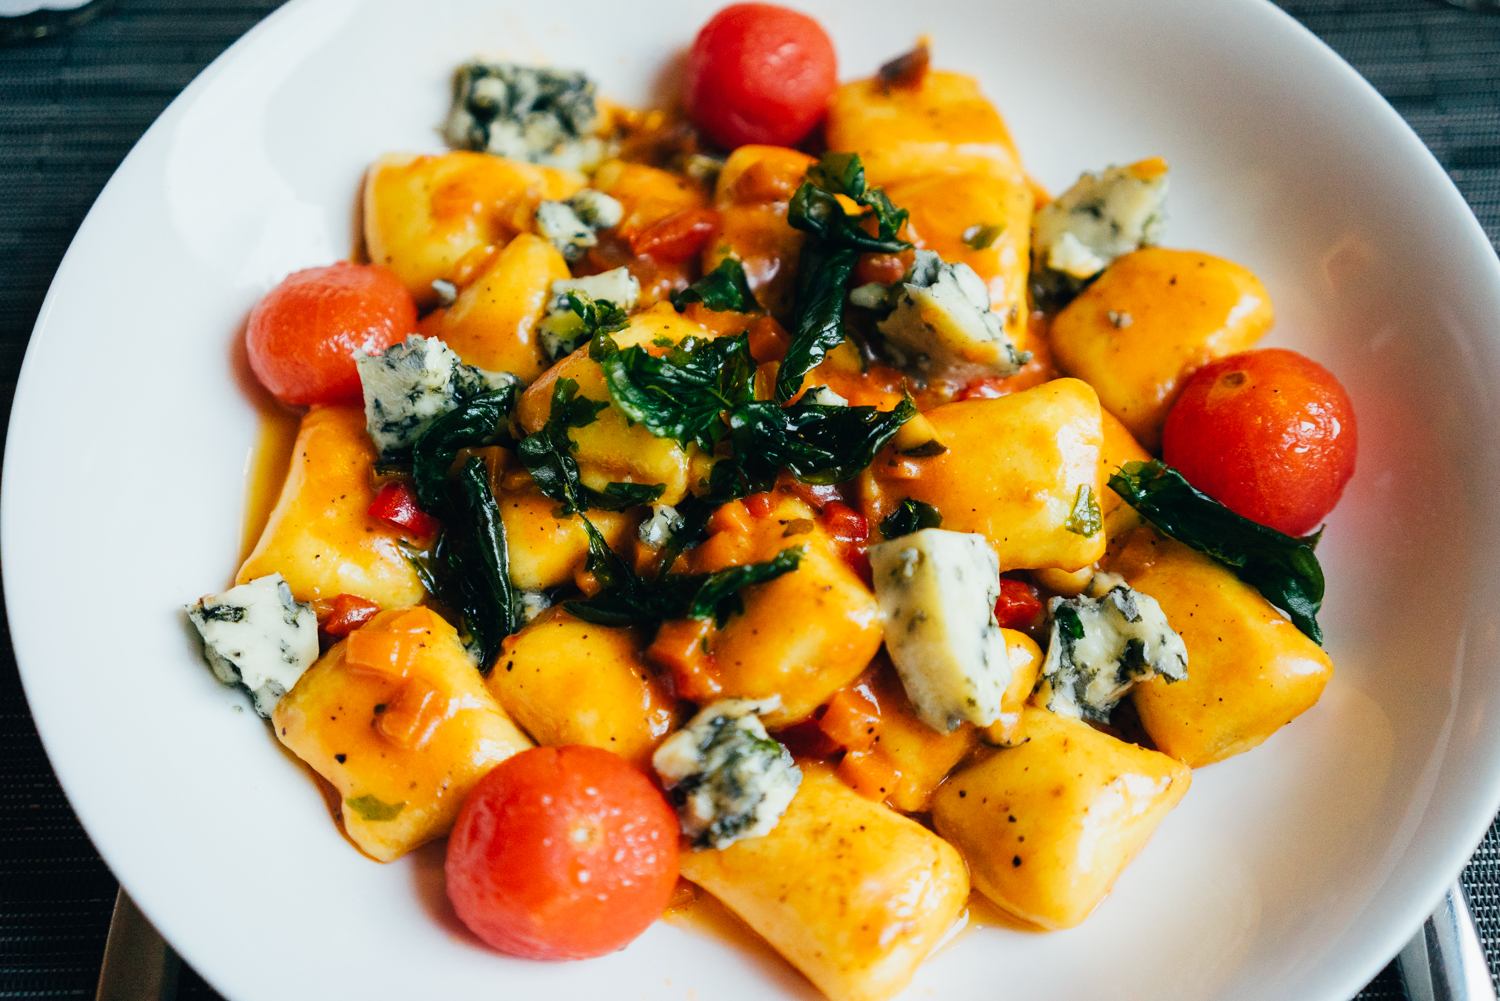 Gnocchi with a tomato basil sauce